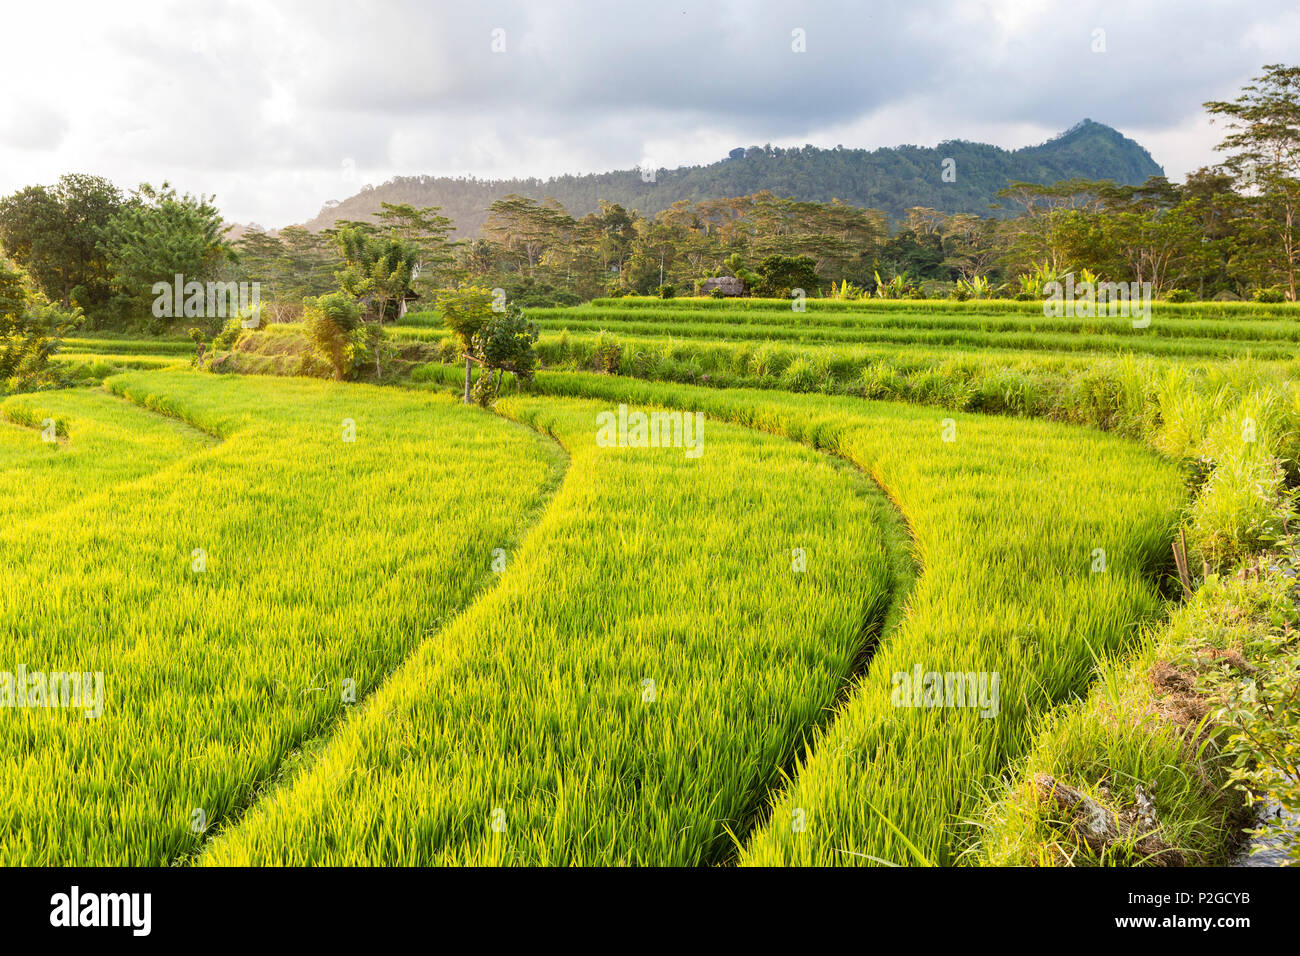 Rice terraces, Sidemen, Bali, Indonesia, Asia - Stock Image